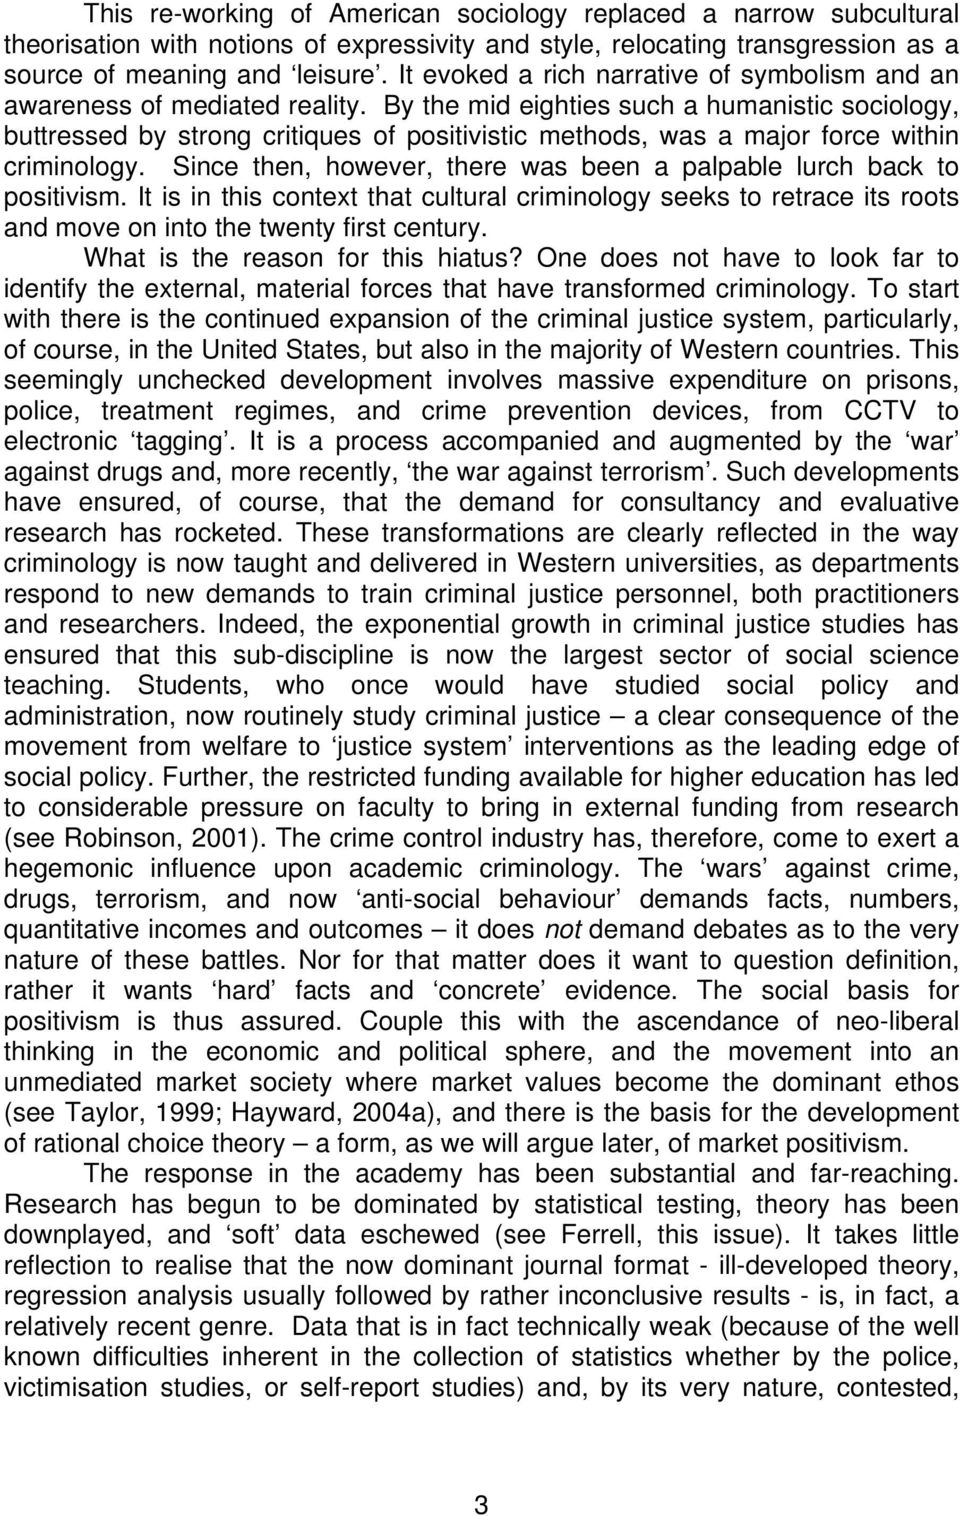 By the mid eighties such a humanistic sociology, buttressed by strong critiques of positivistic methods, was a major force within criminology.